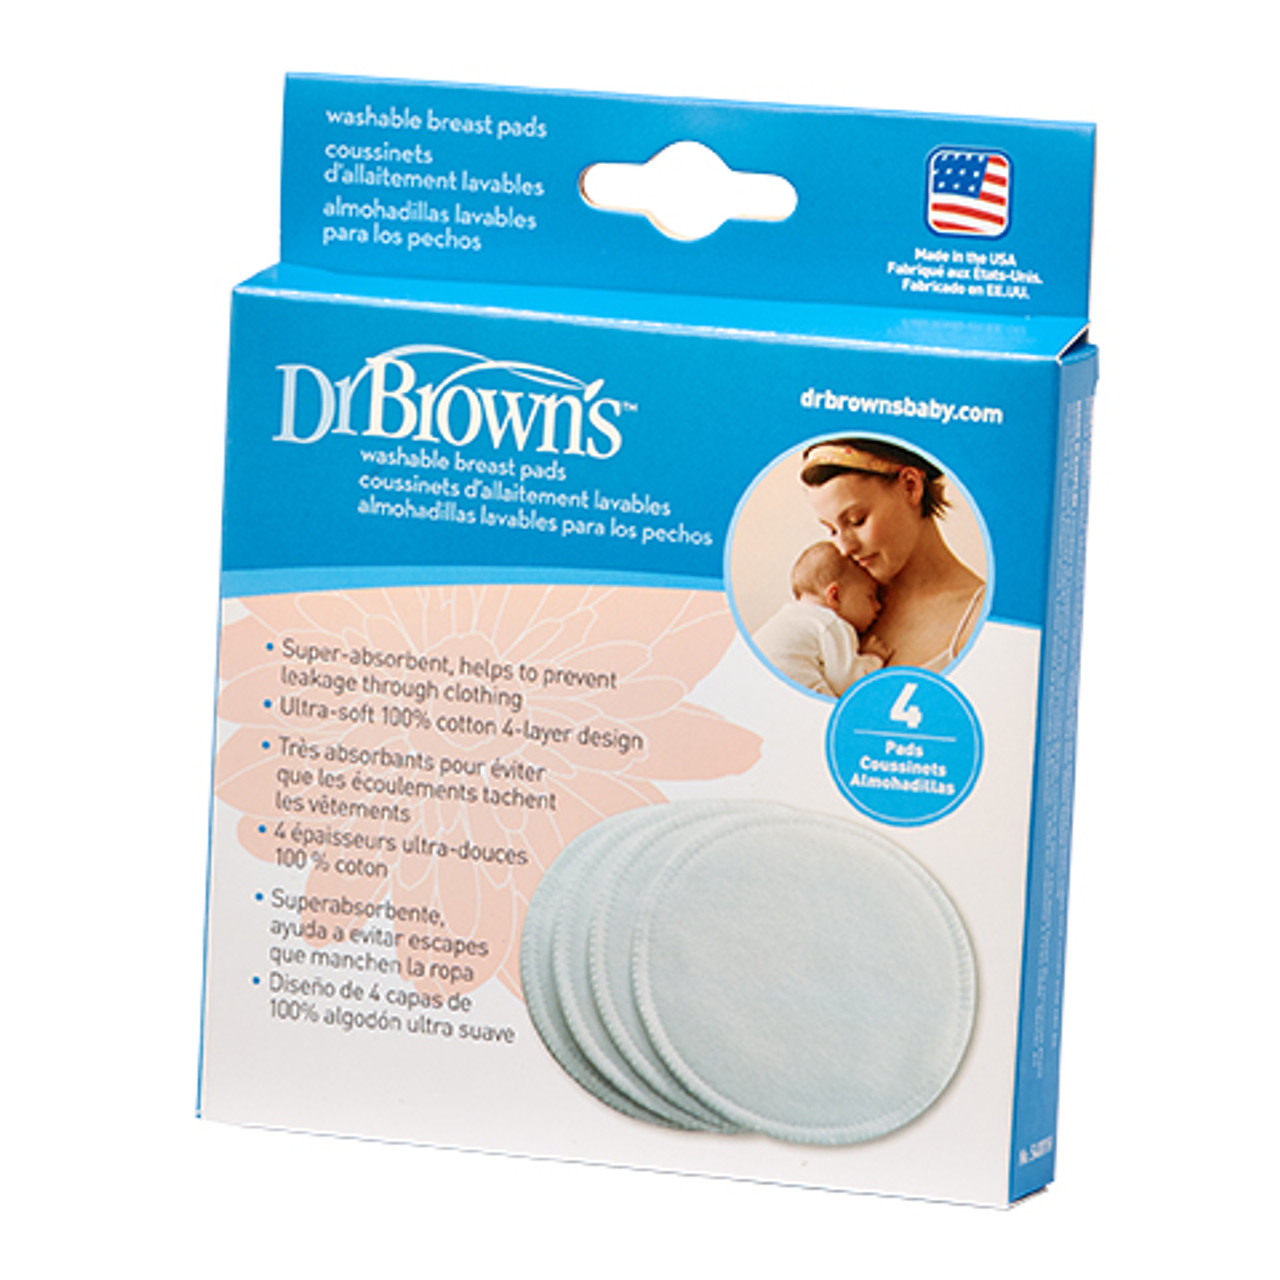 Dr Brown's Washable Breast Pads at Baby Barn Discounts Dr Brown's ultra-absorbent, 100% cotton breast pads provide 4 layers of comfortable confidence by preventing leakage through clothing during breastfeeding stages.